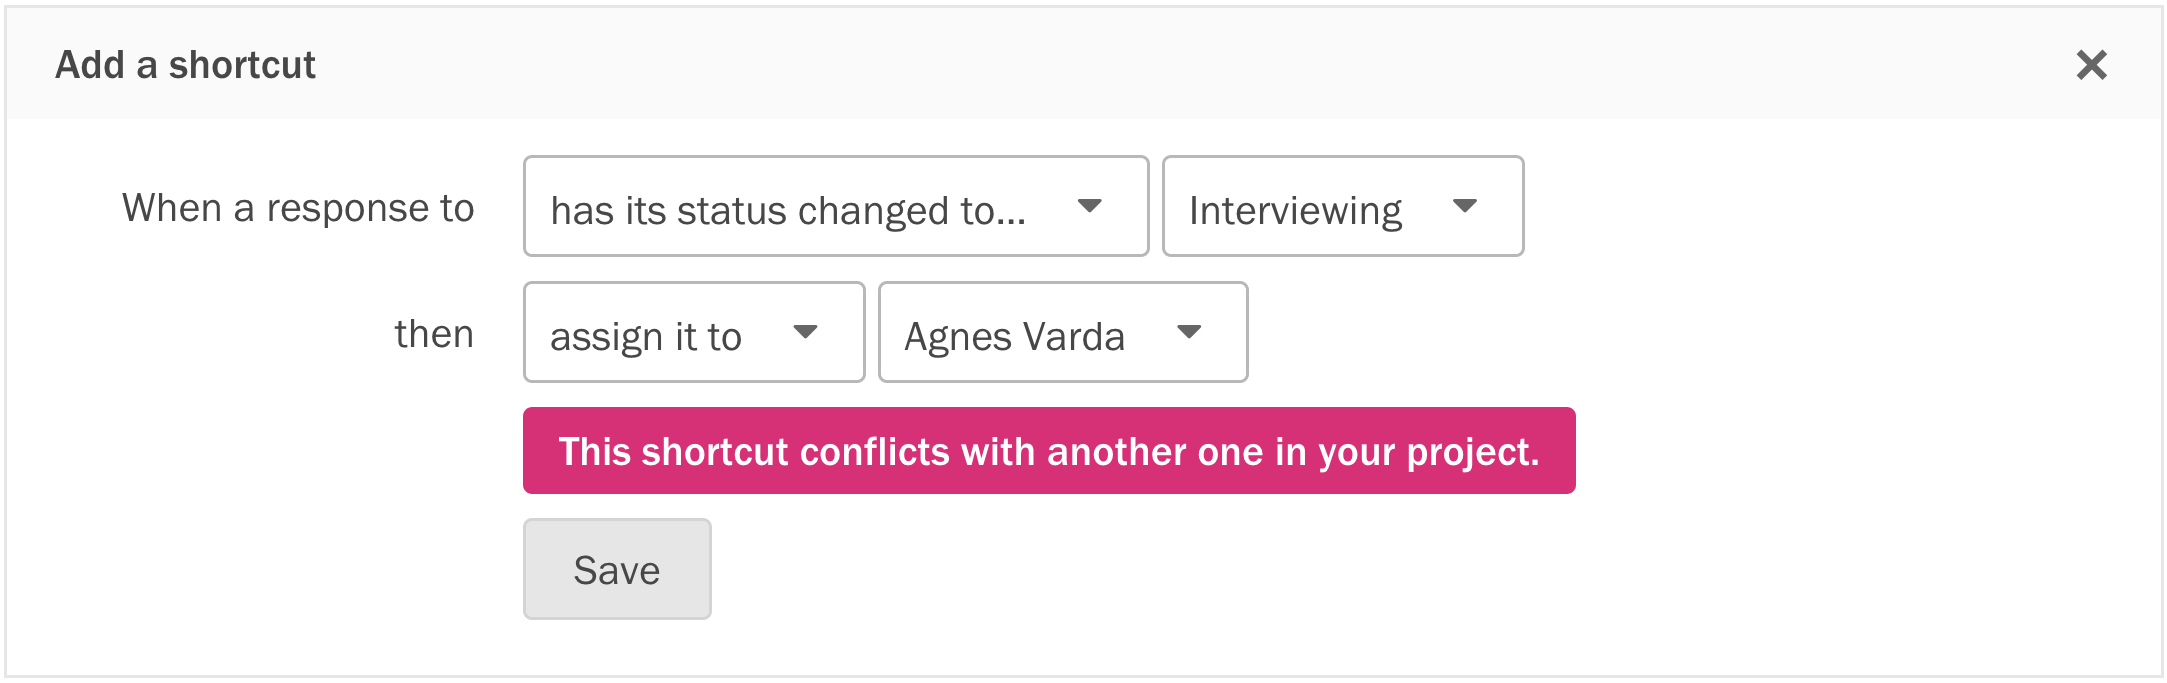 An example of error validation that warns you when creating a paradox.